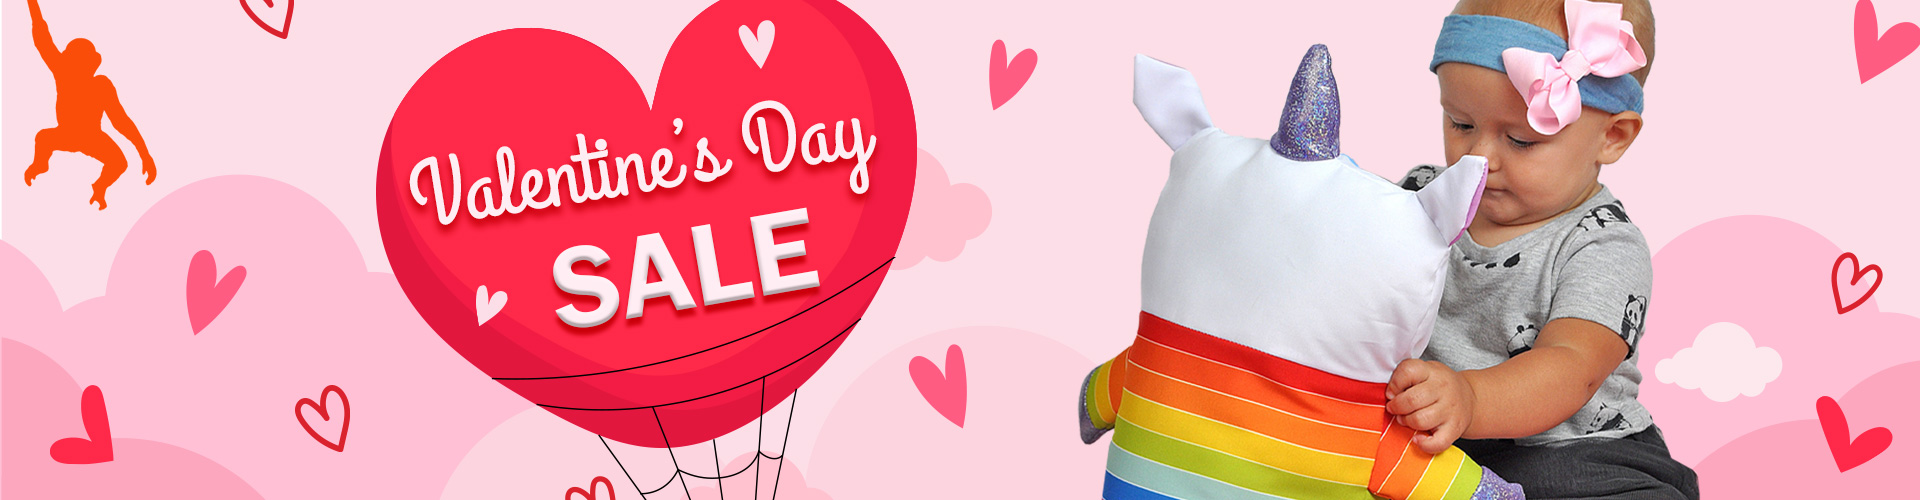 Valentine's-Day-Sale